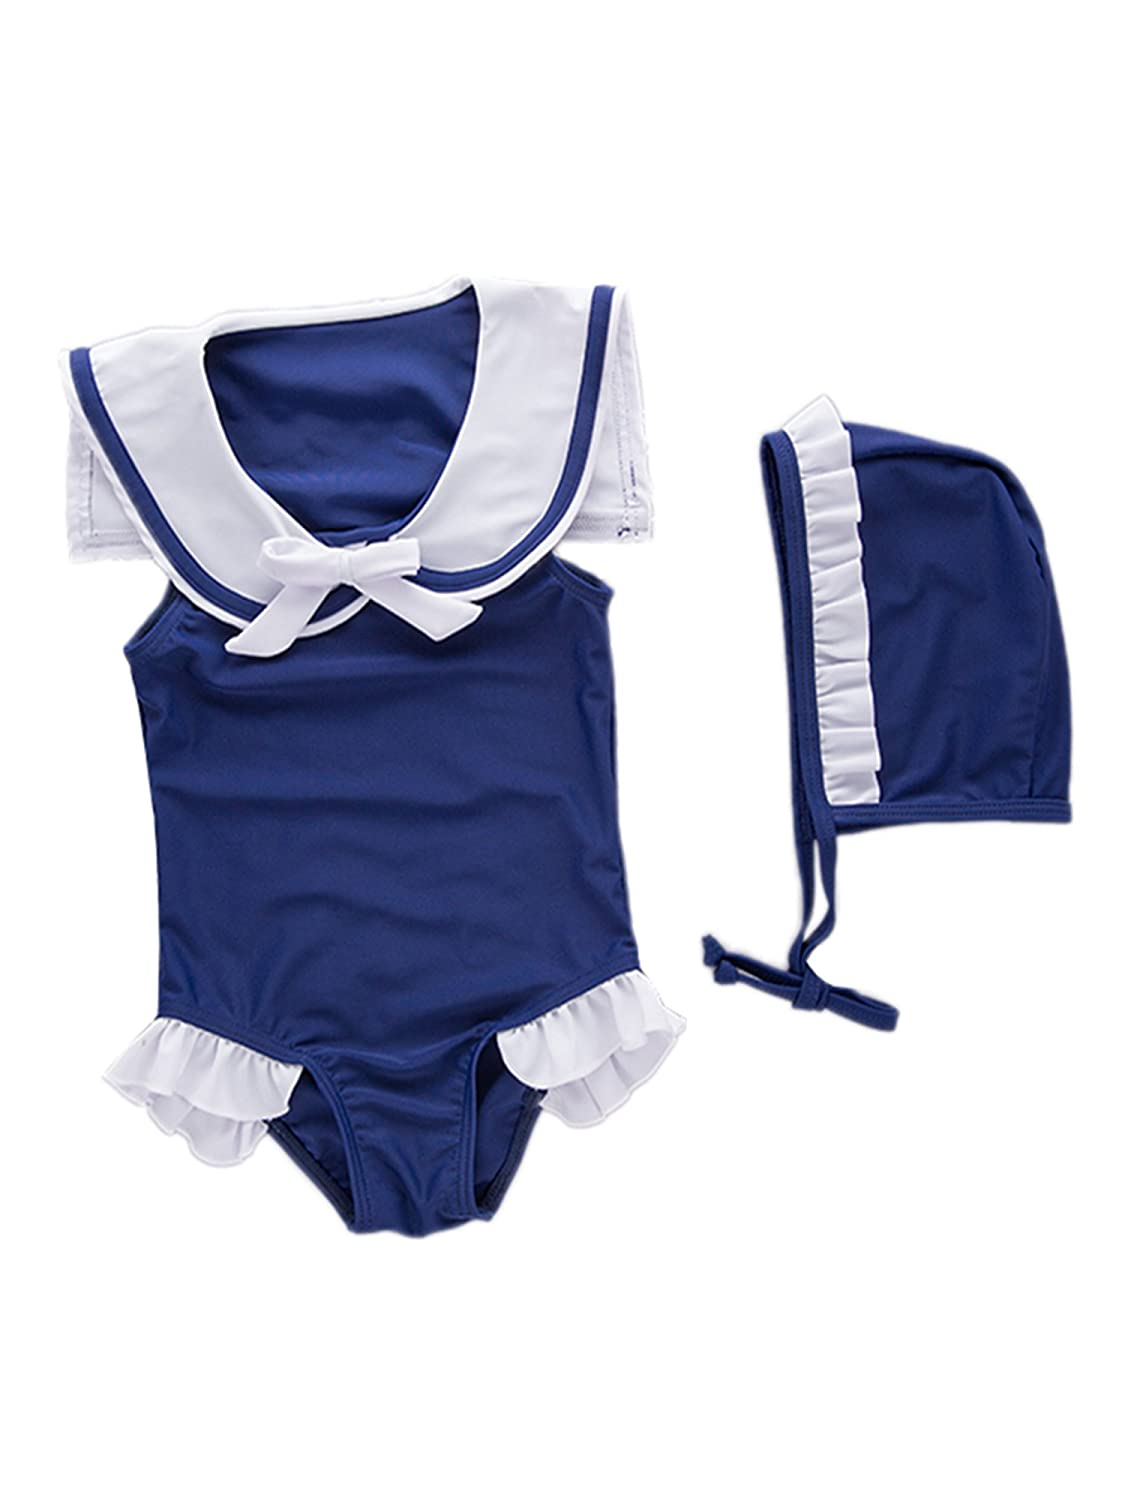 stylesilove Baby Girls Sleeveless Navy Sailor Swimsuit Hat 2-pc